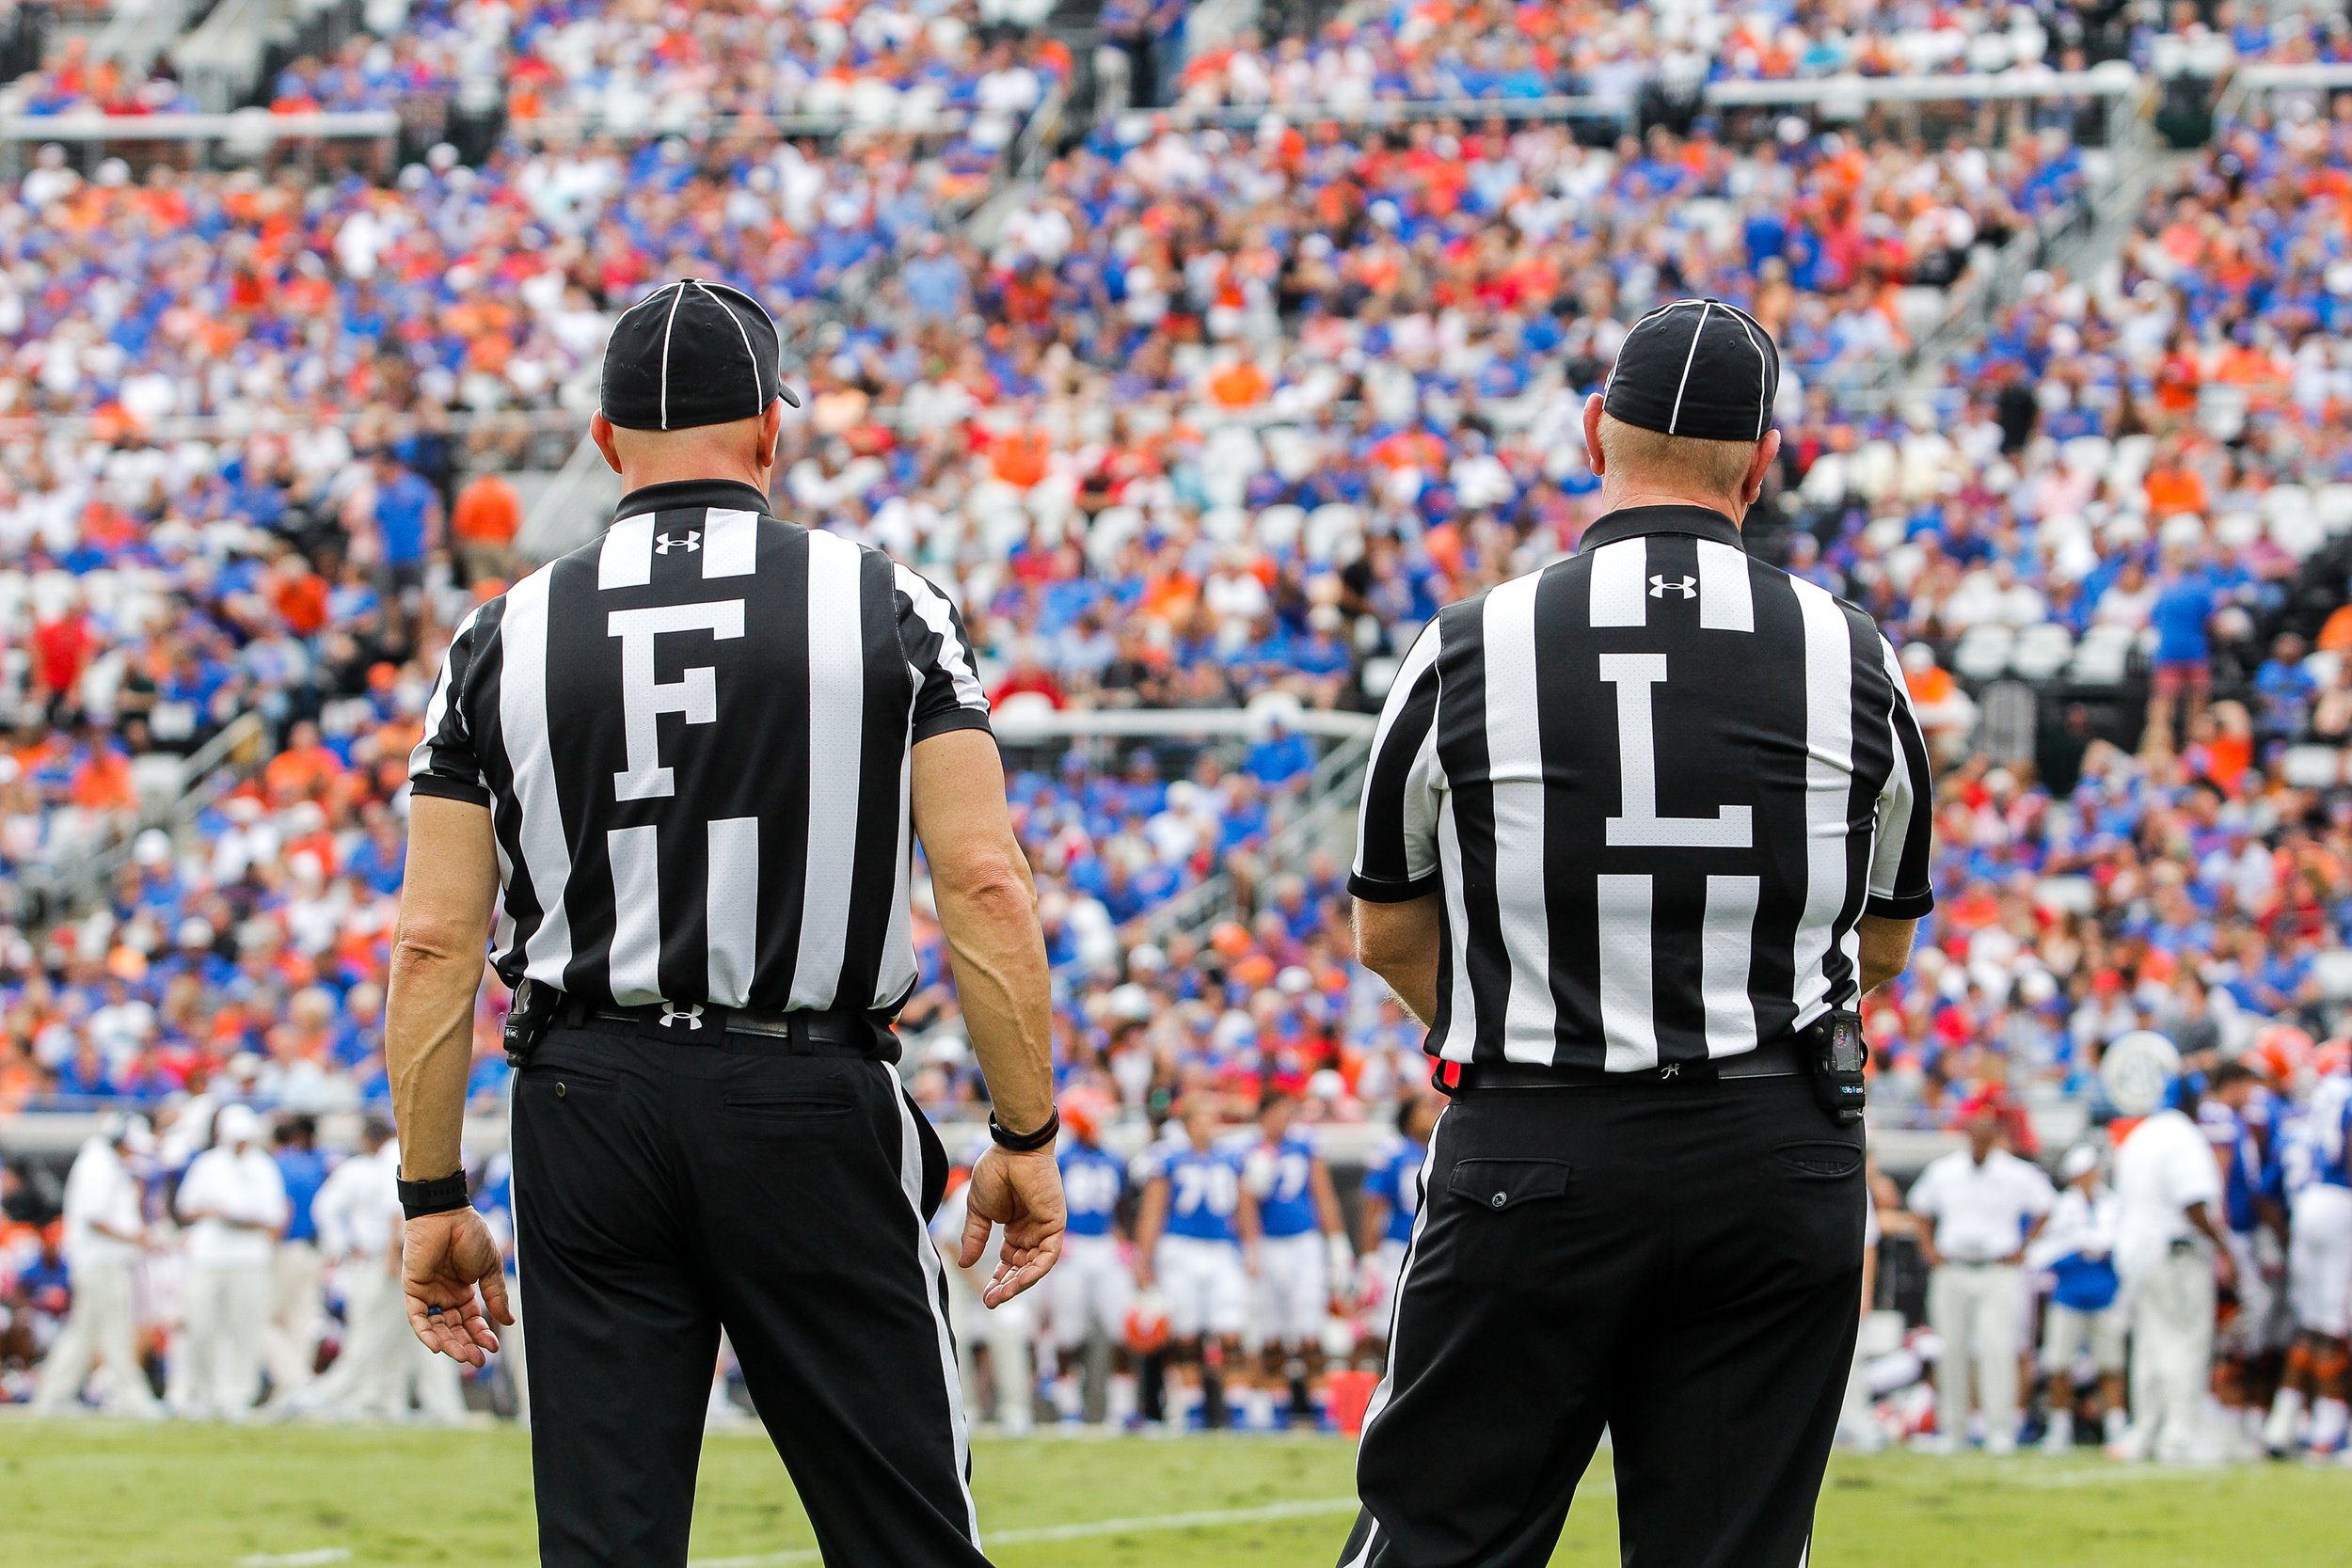 The field judge and the line judge stand on the sideline during a college football game between the University of Georgia and the University of Florida in Jacksonville, Fl., on Saturday, Oct. 28, 2017. The Bulldogs defeated the Gators, 42-7.